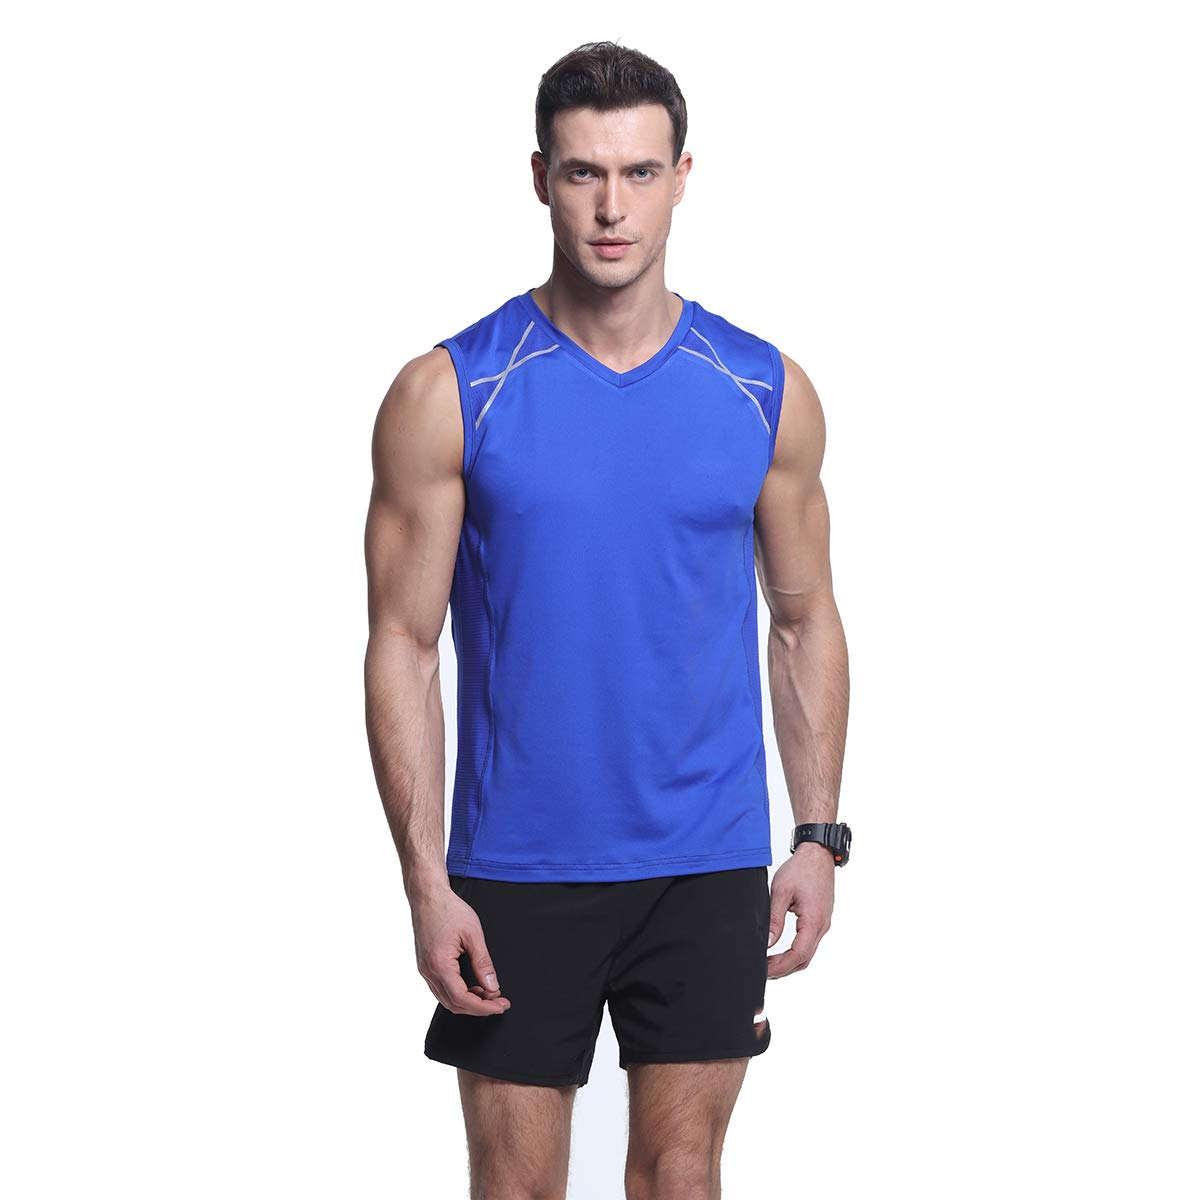 Men's Gym Outdoor Slim-Fit Sports Tank Top Quick-Dry Stretchy Workout Running Sleeveless Shirts